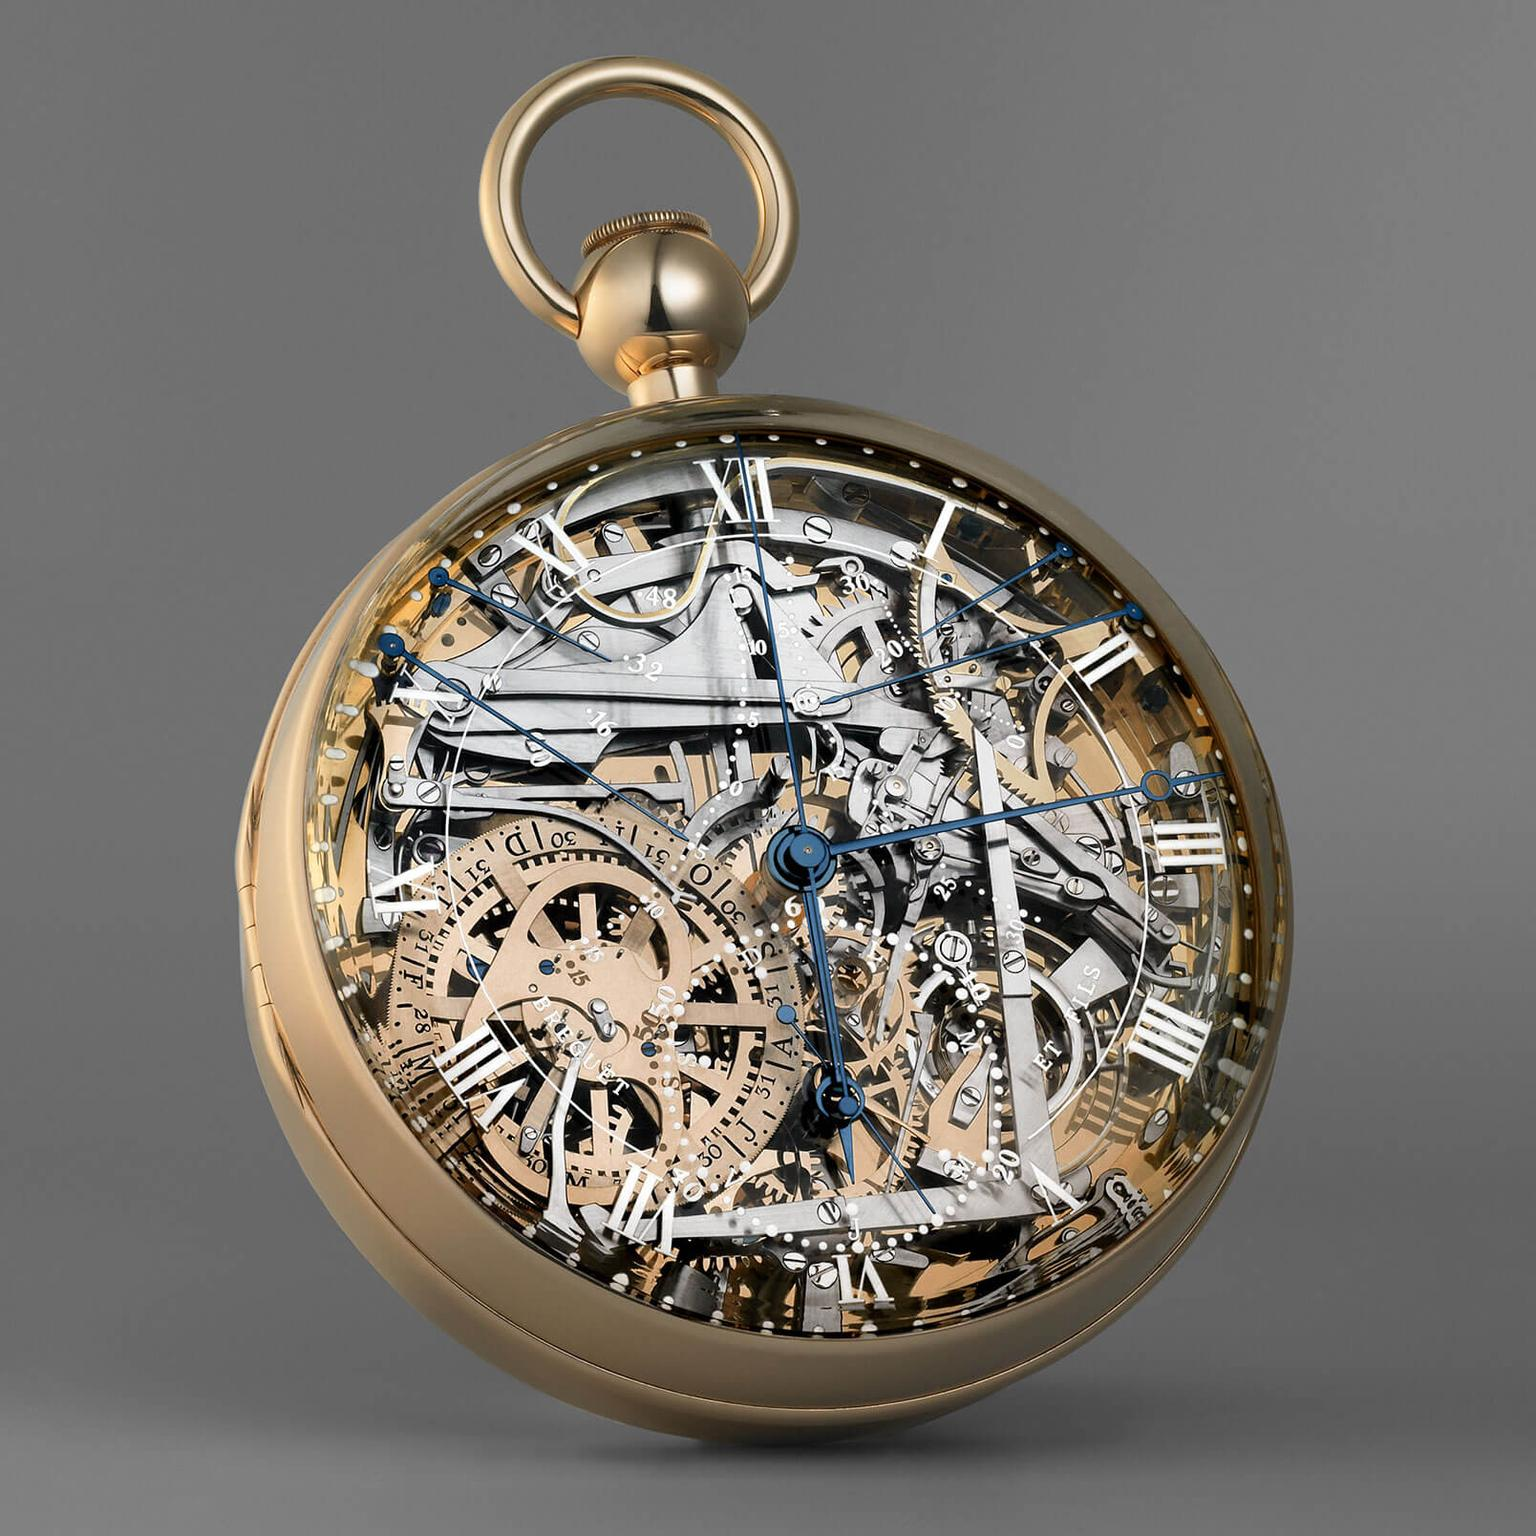 Breguet Marie Antoinette pocket watch